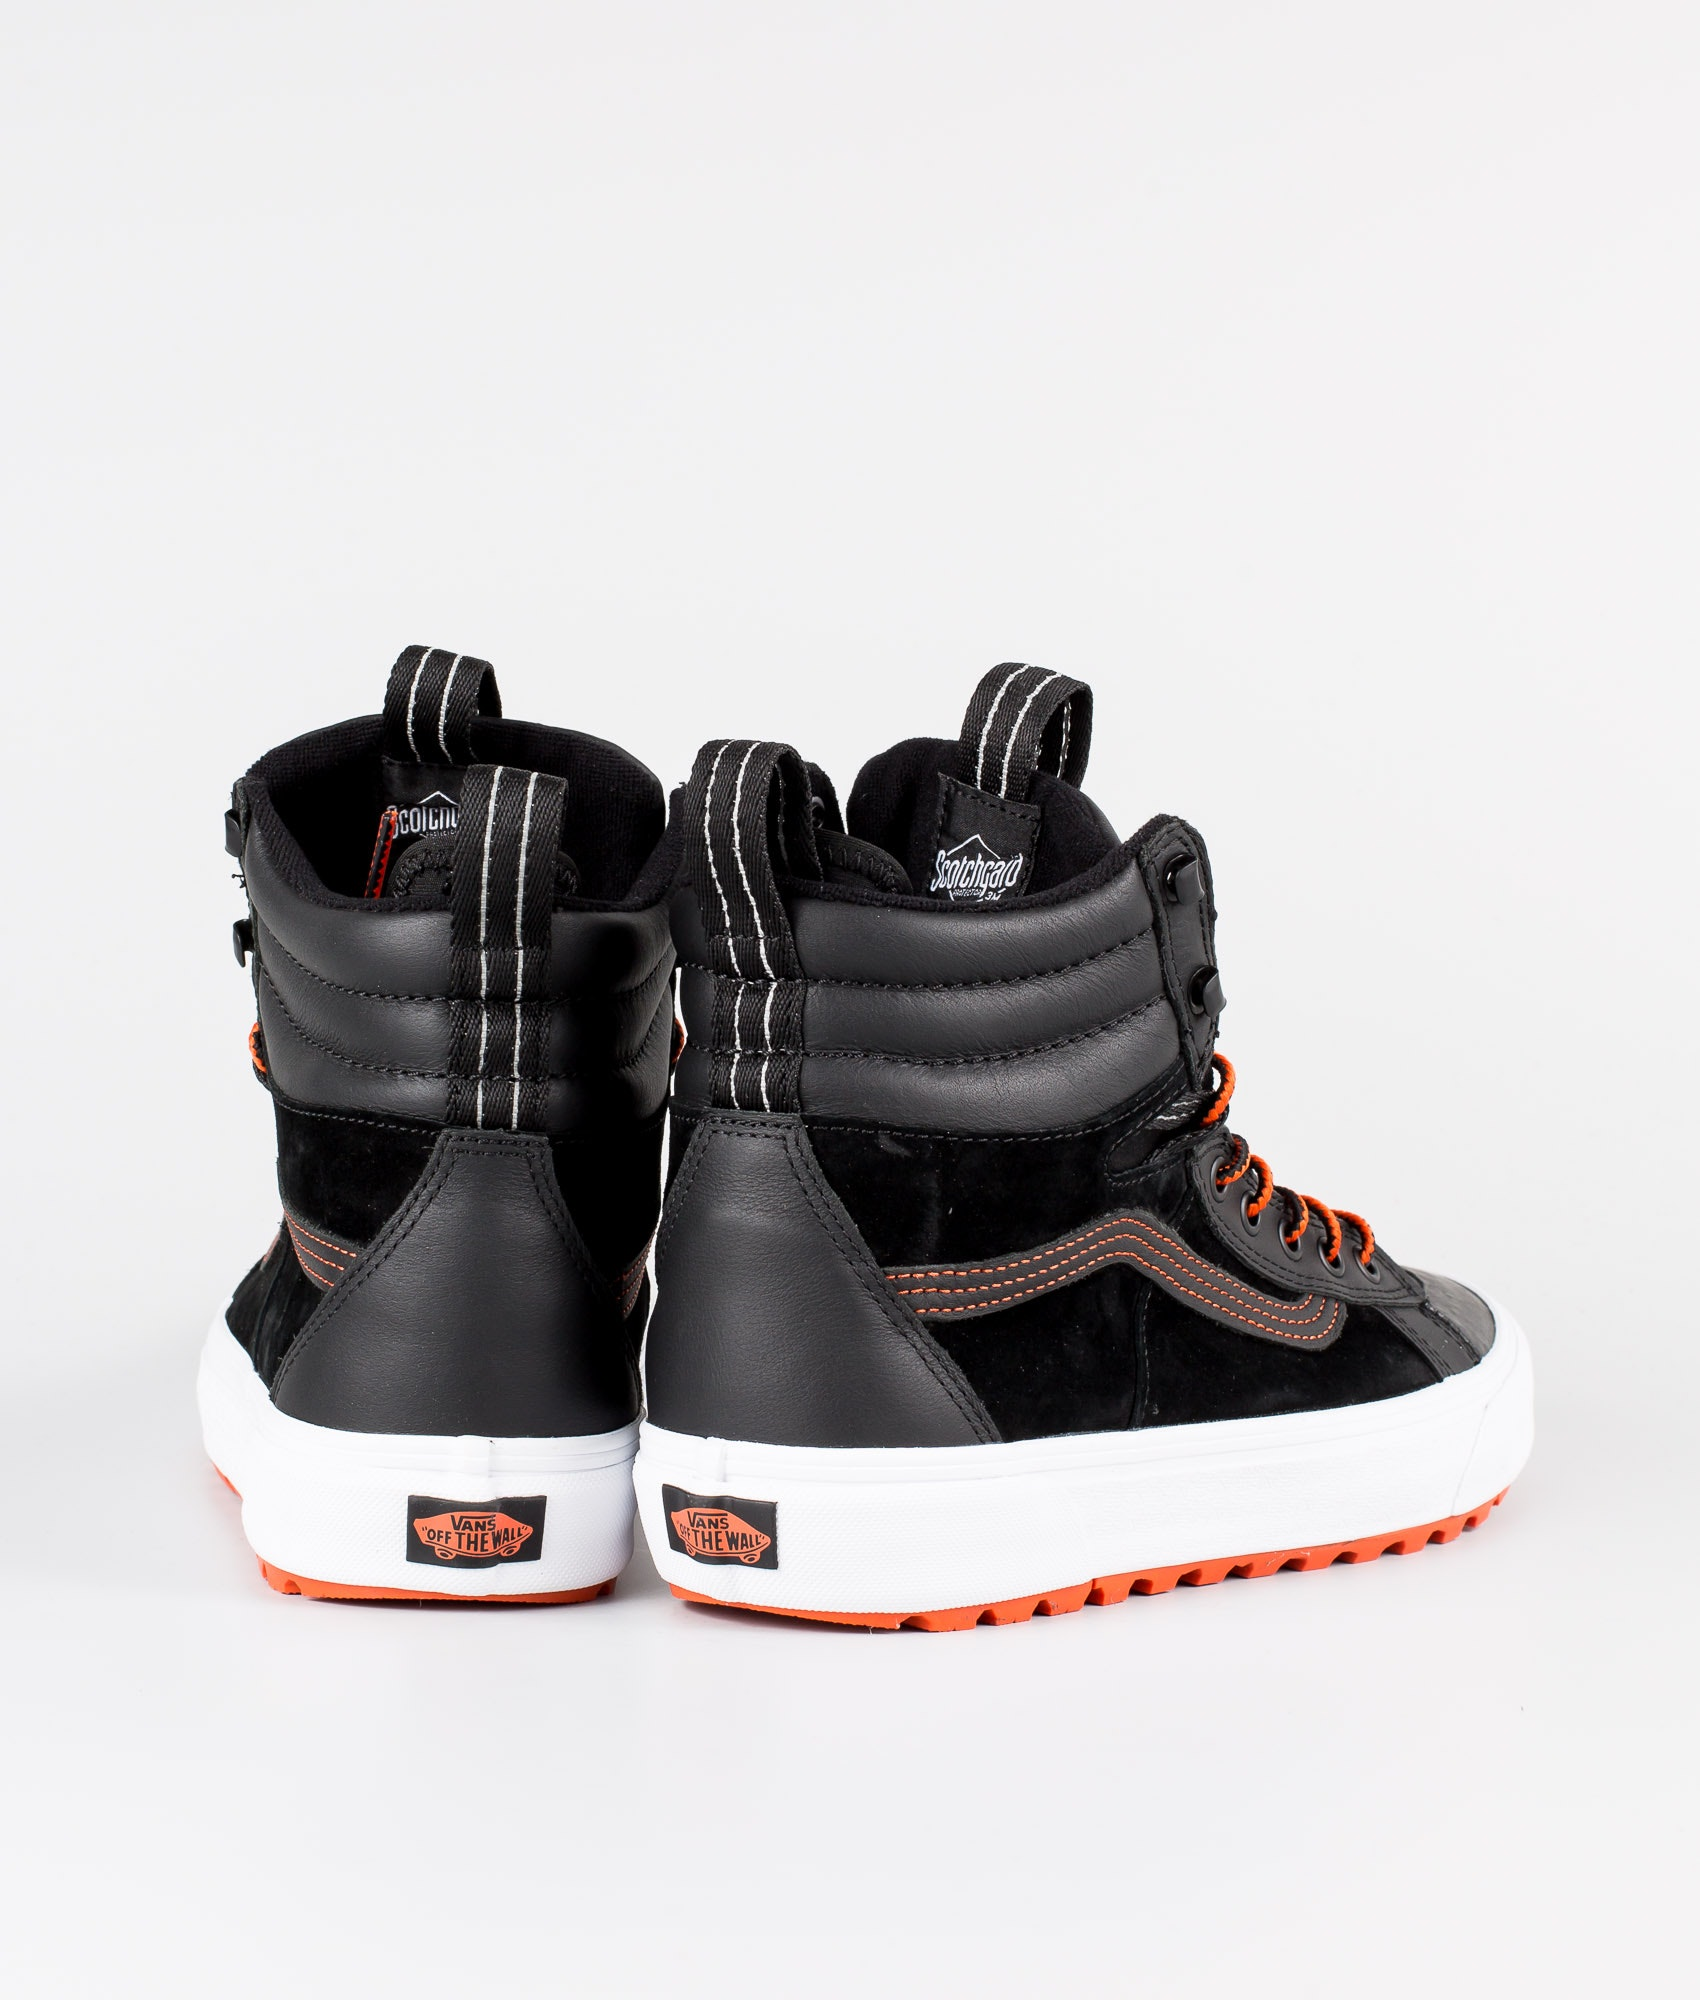 Vans Sk8,Hi Boot MTE 2.0 Dx Shoes (MTE) Black/Spicy Orange